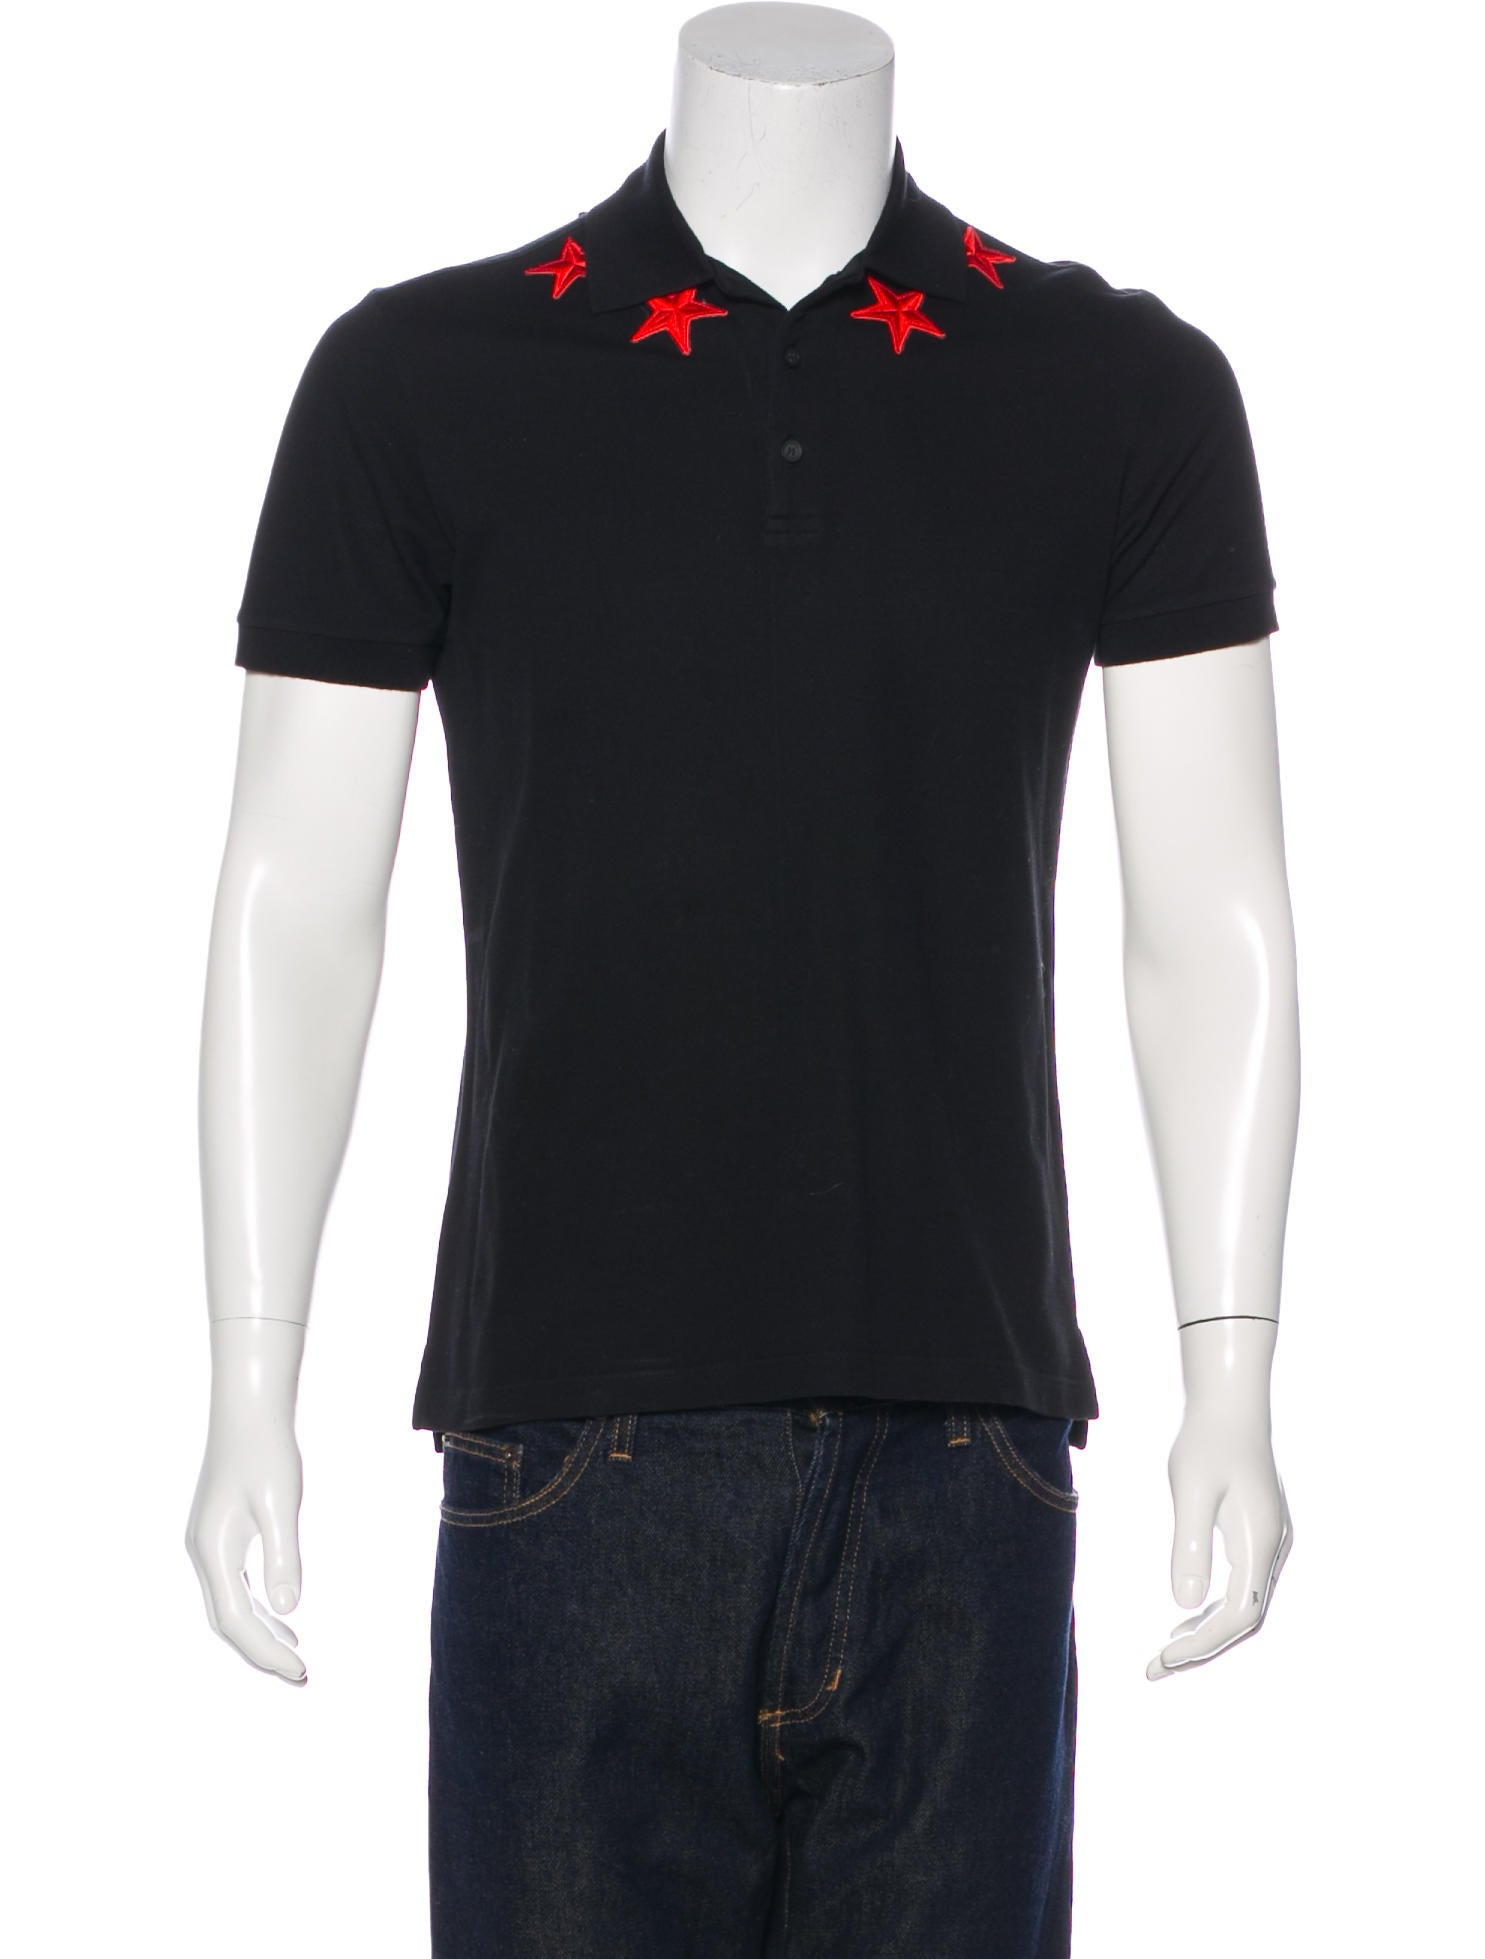 f42962055 Givenchy Star Patch Polo Shirt - Clothing - GIV49142 | The RealReal